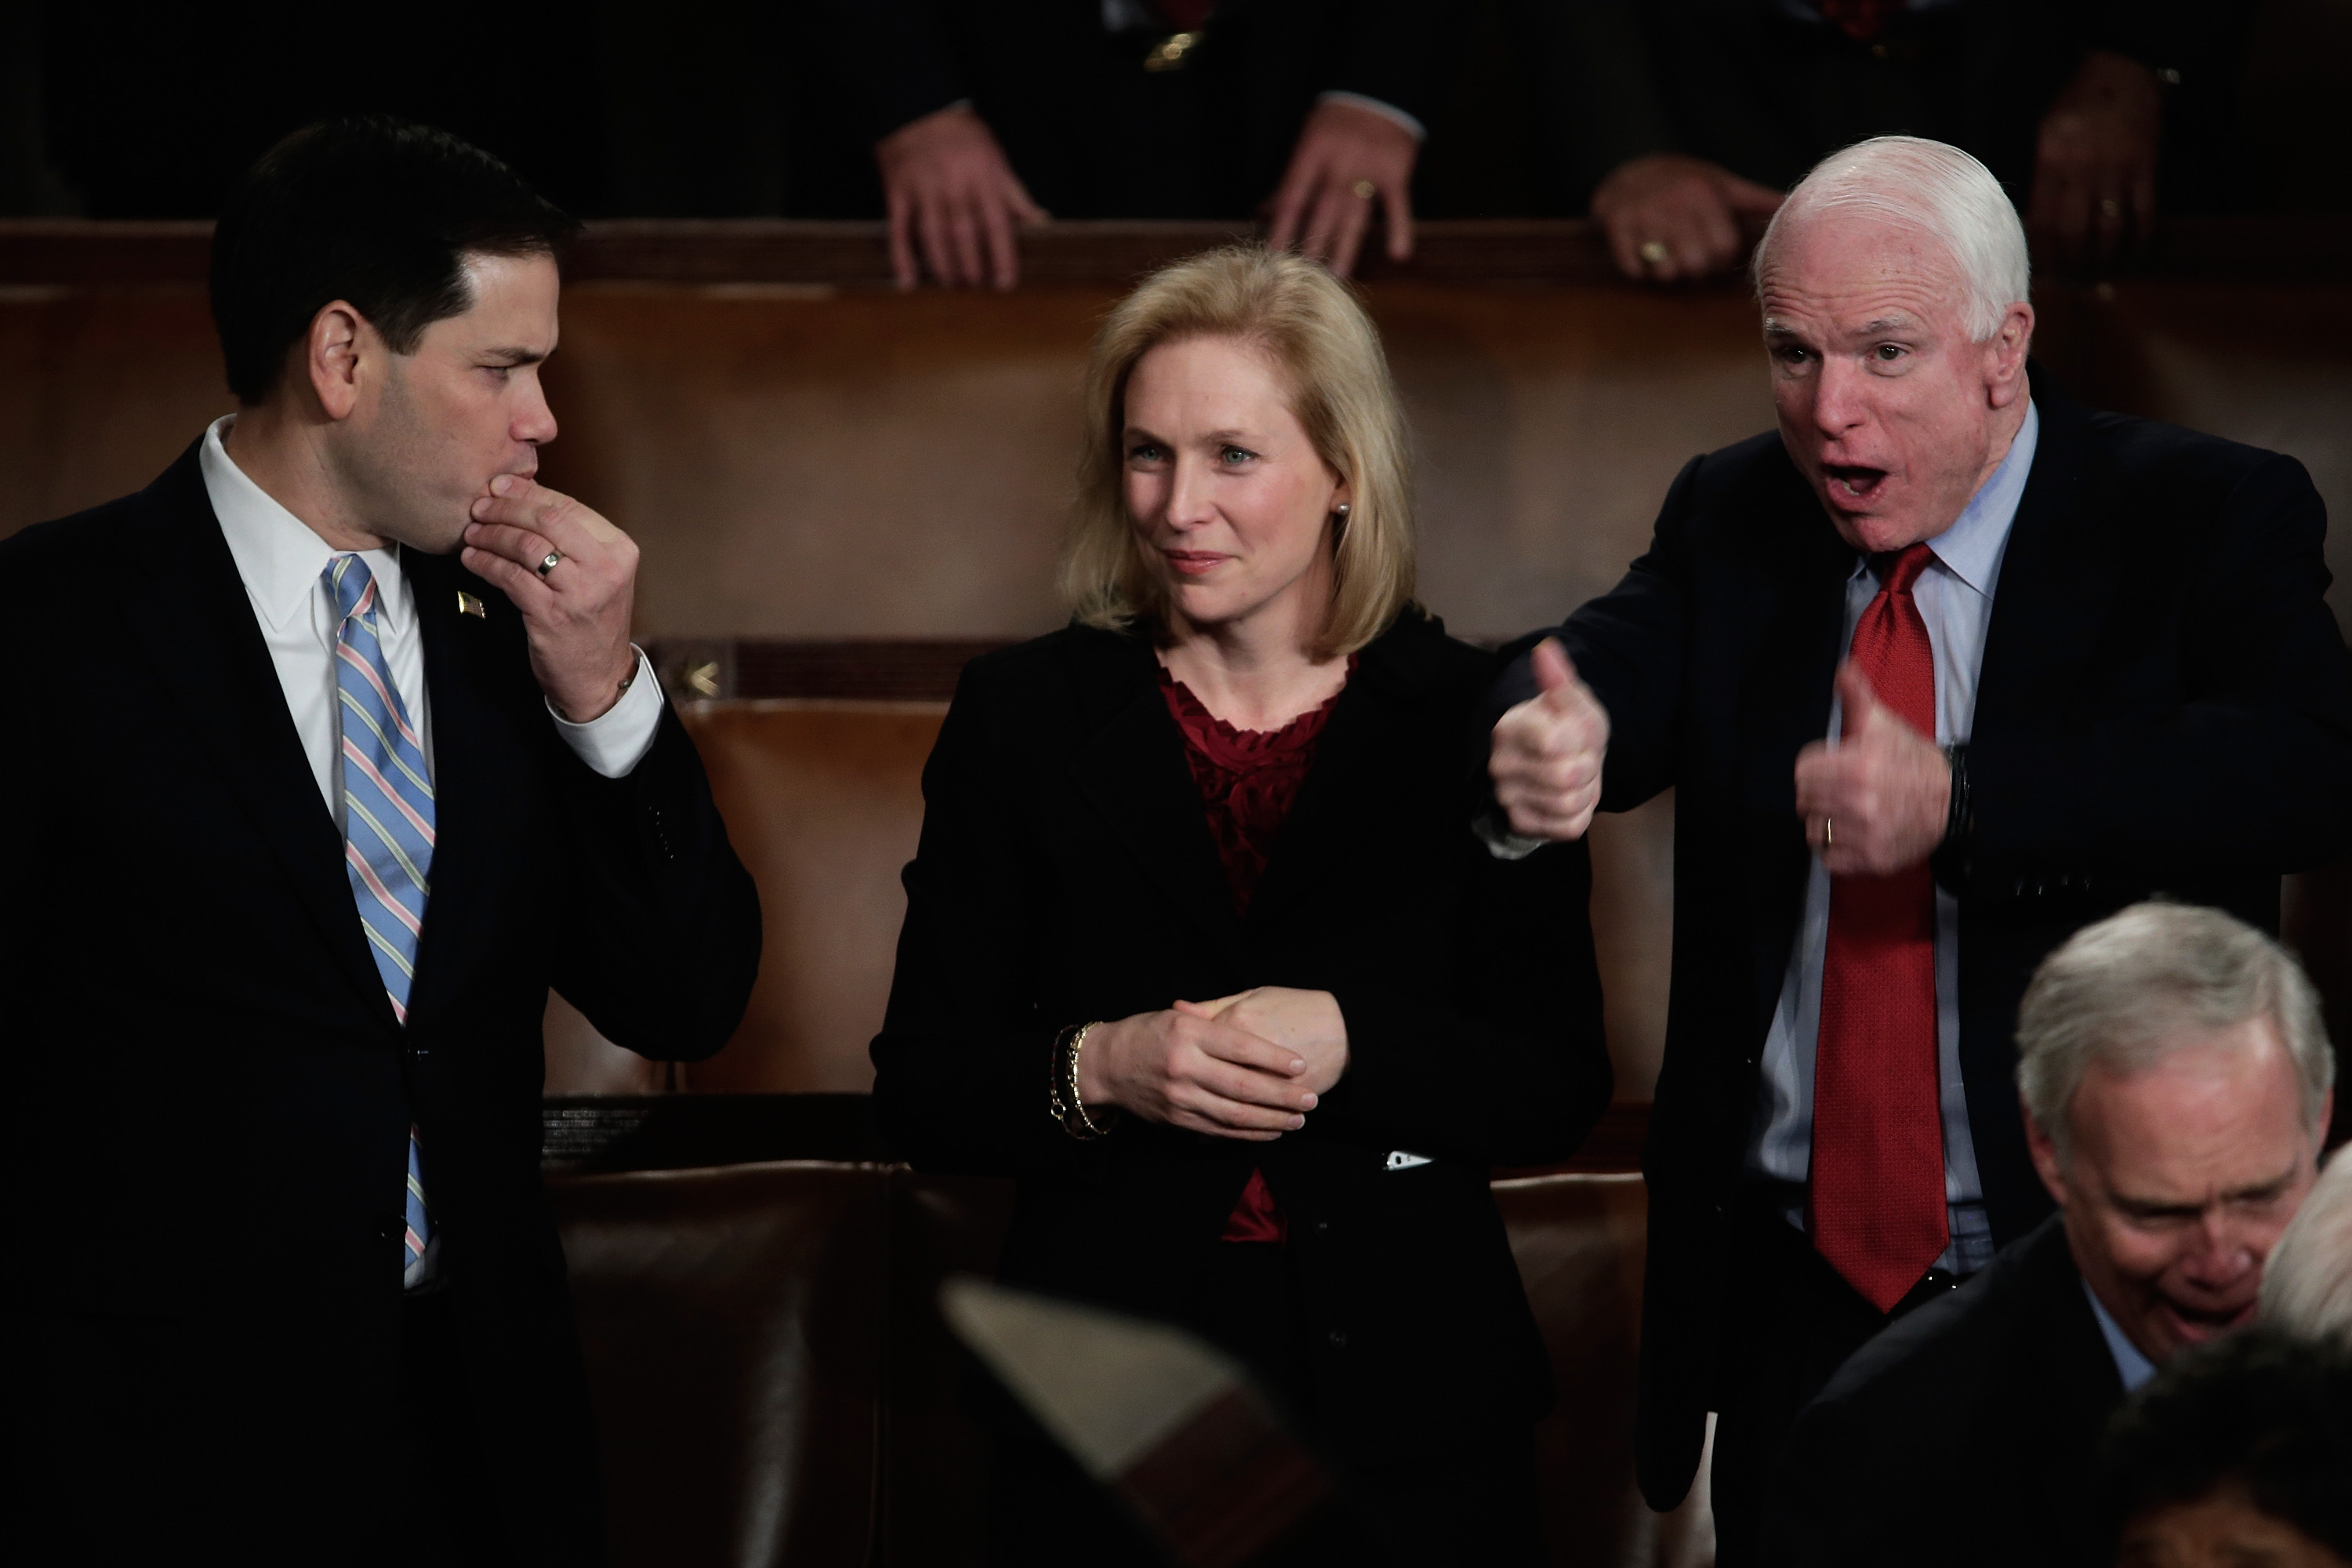 WASHINGTON, DC - JANUARY 28: (L-R) U.S. Sen. Marco Rubio (R-FL), U.S. Sen. Kristen Gillibrand (D-NY) , and U.S. Sen. John McCain (R-AZ) wait for U.S. President Barack Obama to deliver the State of the Union address to a joint session of Congress in the House Chamber at the U.S. Capitol on January 28, 2014 in Washington, DC. In his fifth State of the Union address, Obama is expected to emphasize on healthcare, economic fairness and new initiatives designed to stimulate the U.S. economy with bipartisan cooperation. (Photo by Win McNamee/Getty Images)